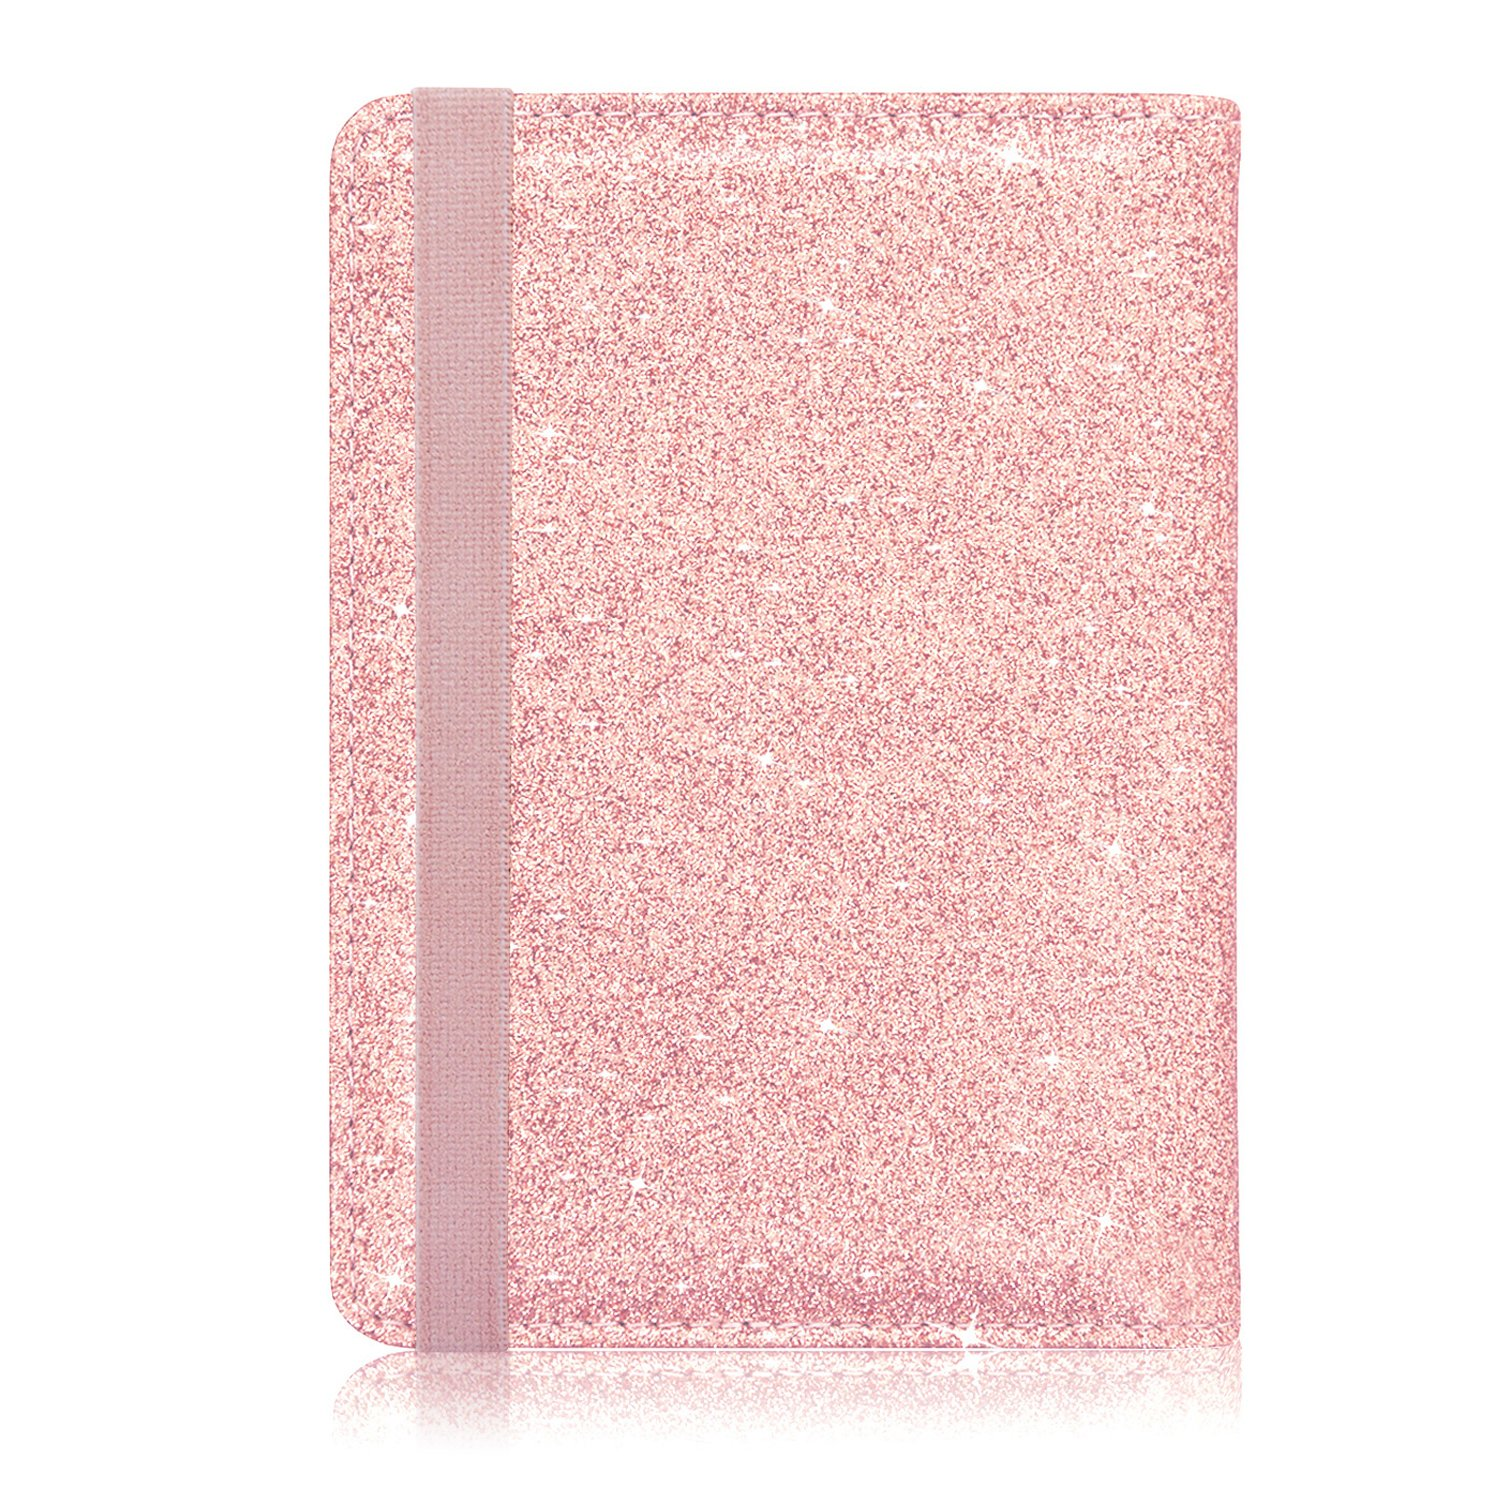 Passport Holder Cover, ACdream Travel Leather RFID Blocking Case Wallet for Passport with Elastic Band Closure, Rose Gold Glitter by ACdream (Image #6)